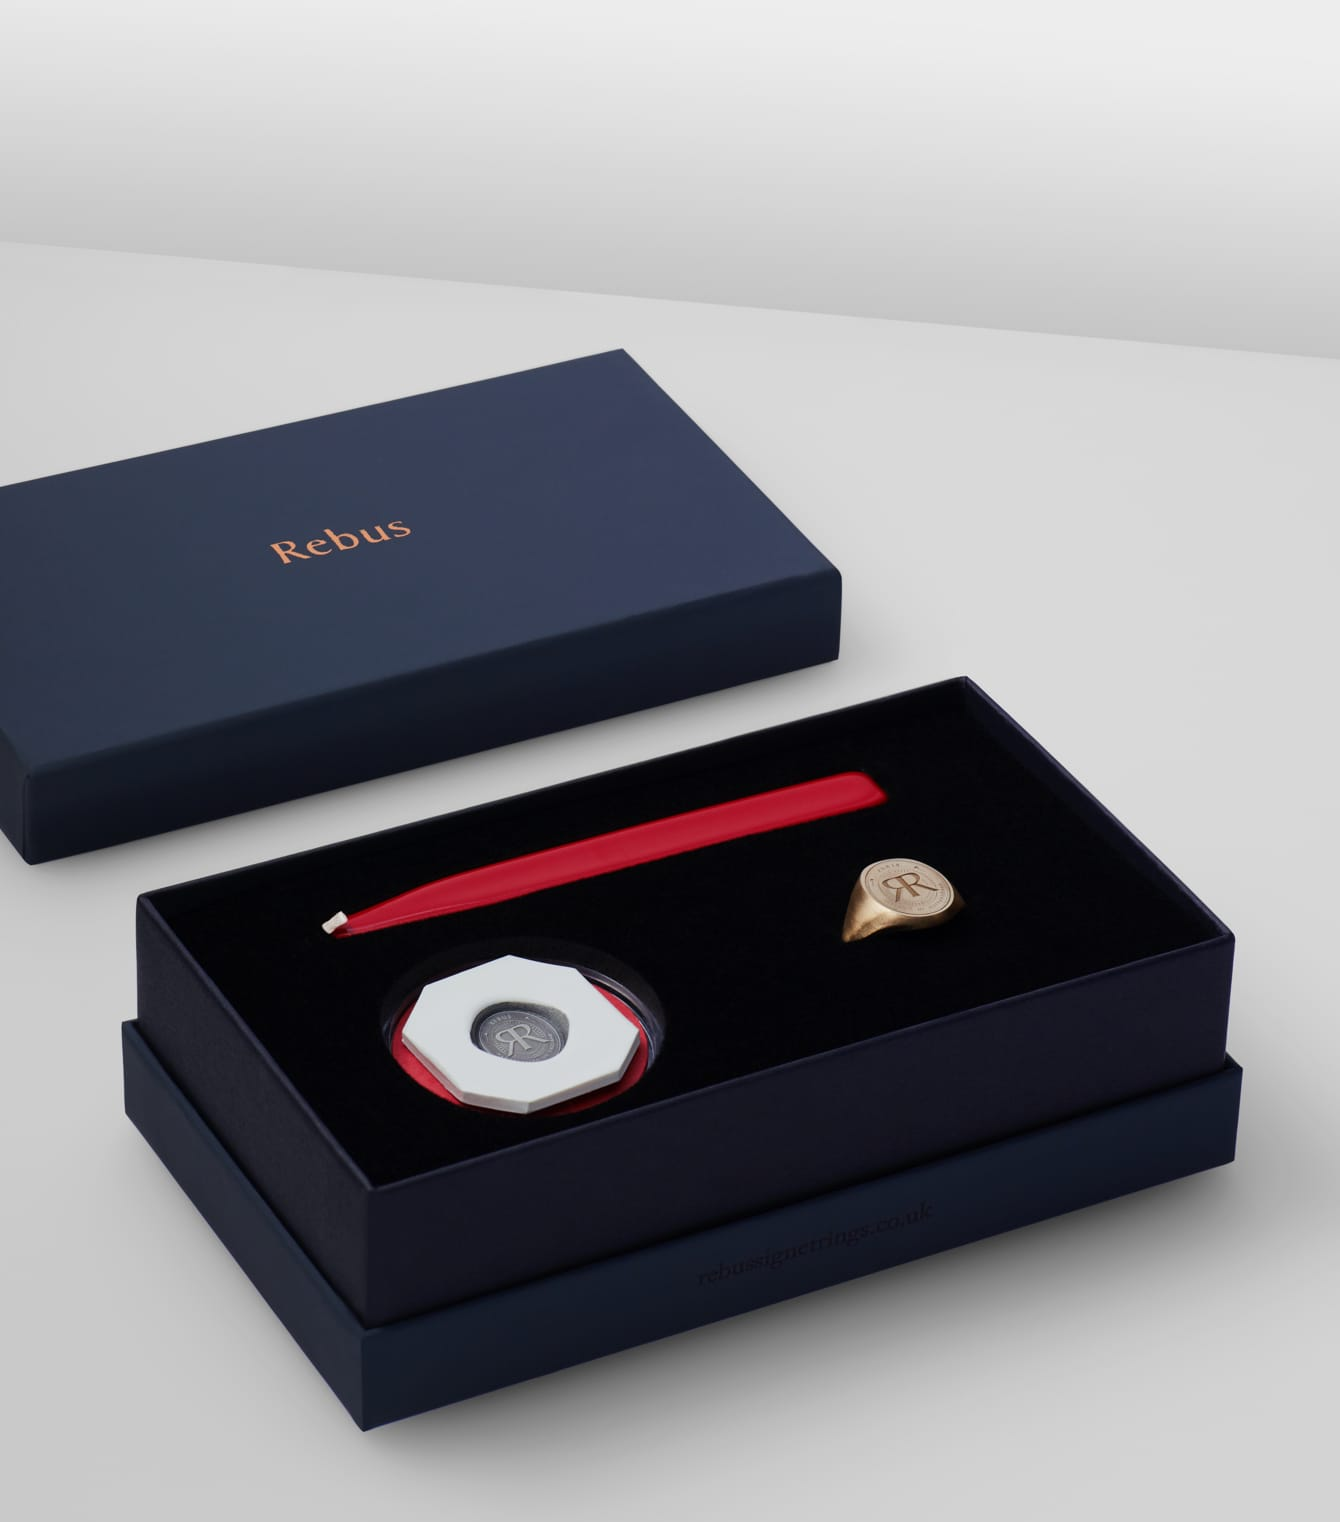 REBUS  Signet Ring Gift Voucher  price at your request